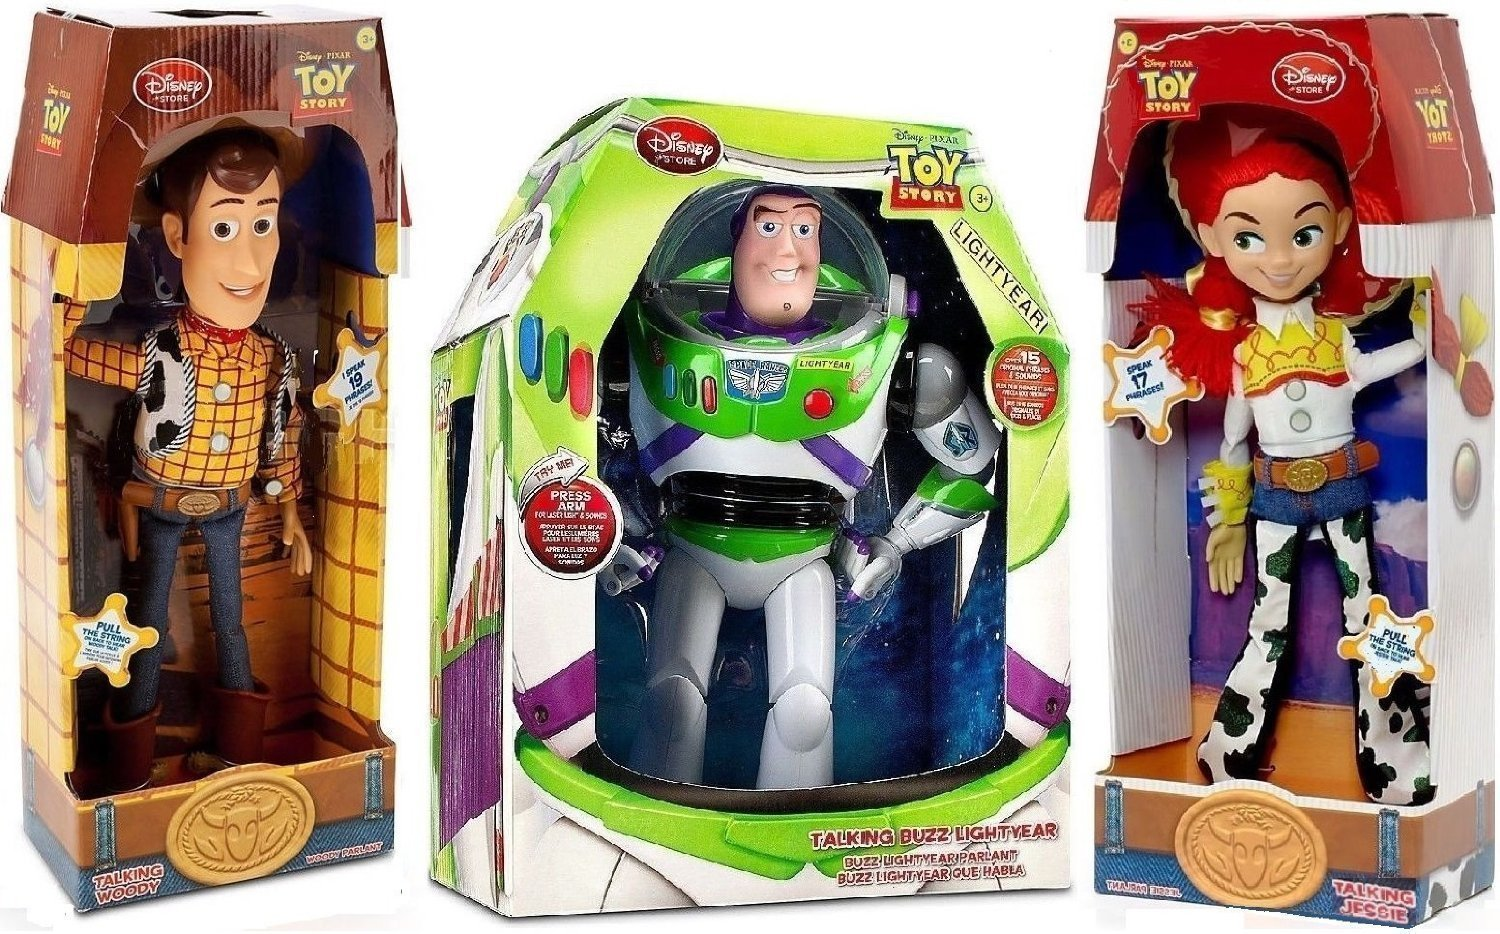 Toy Story Woody, Buzz Lightyear, Jessie Cowgirl talking action figure Dolls by Disney, $119 @amazon.com